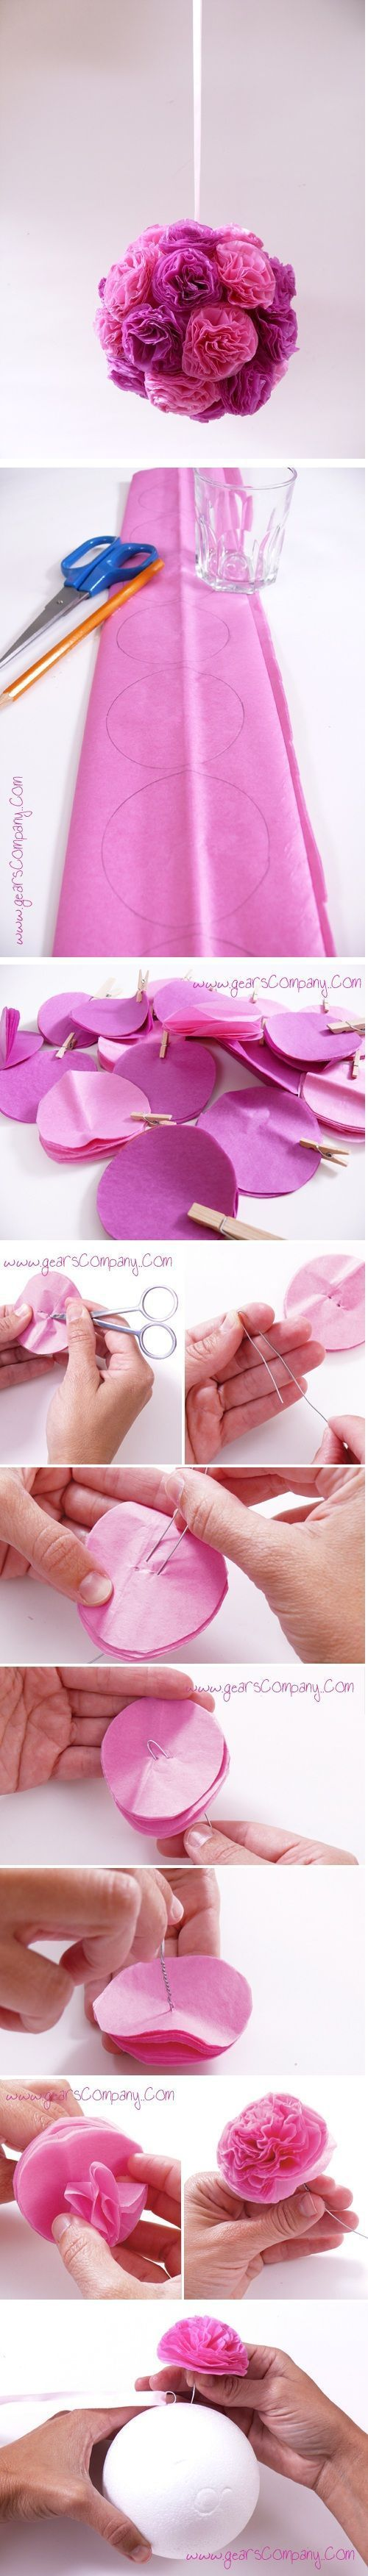 10 Amazing Ideas For Diy Home Decoration 10 | Diy Crafts Projects & Home Design Creative Ideas Quirky Ideas